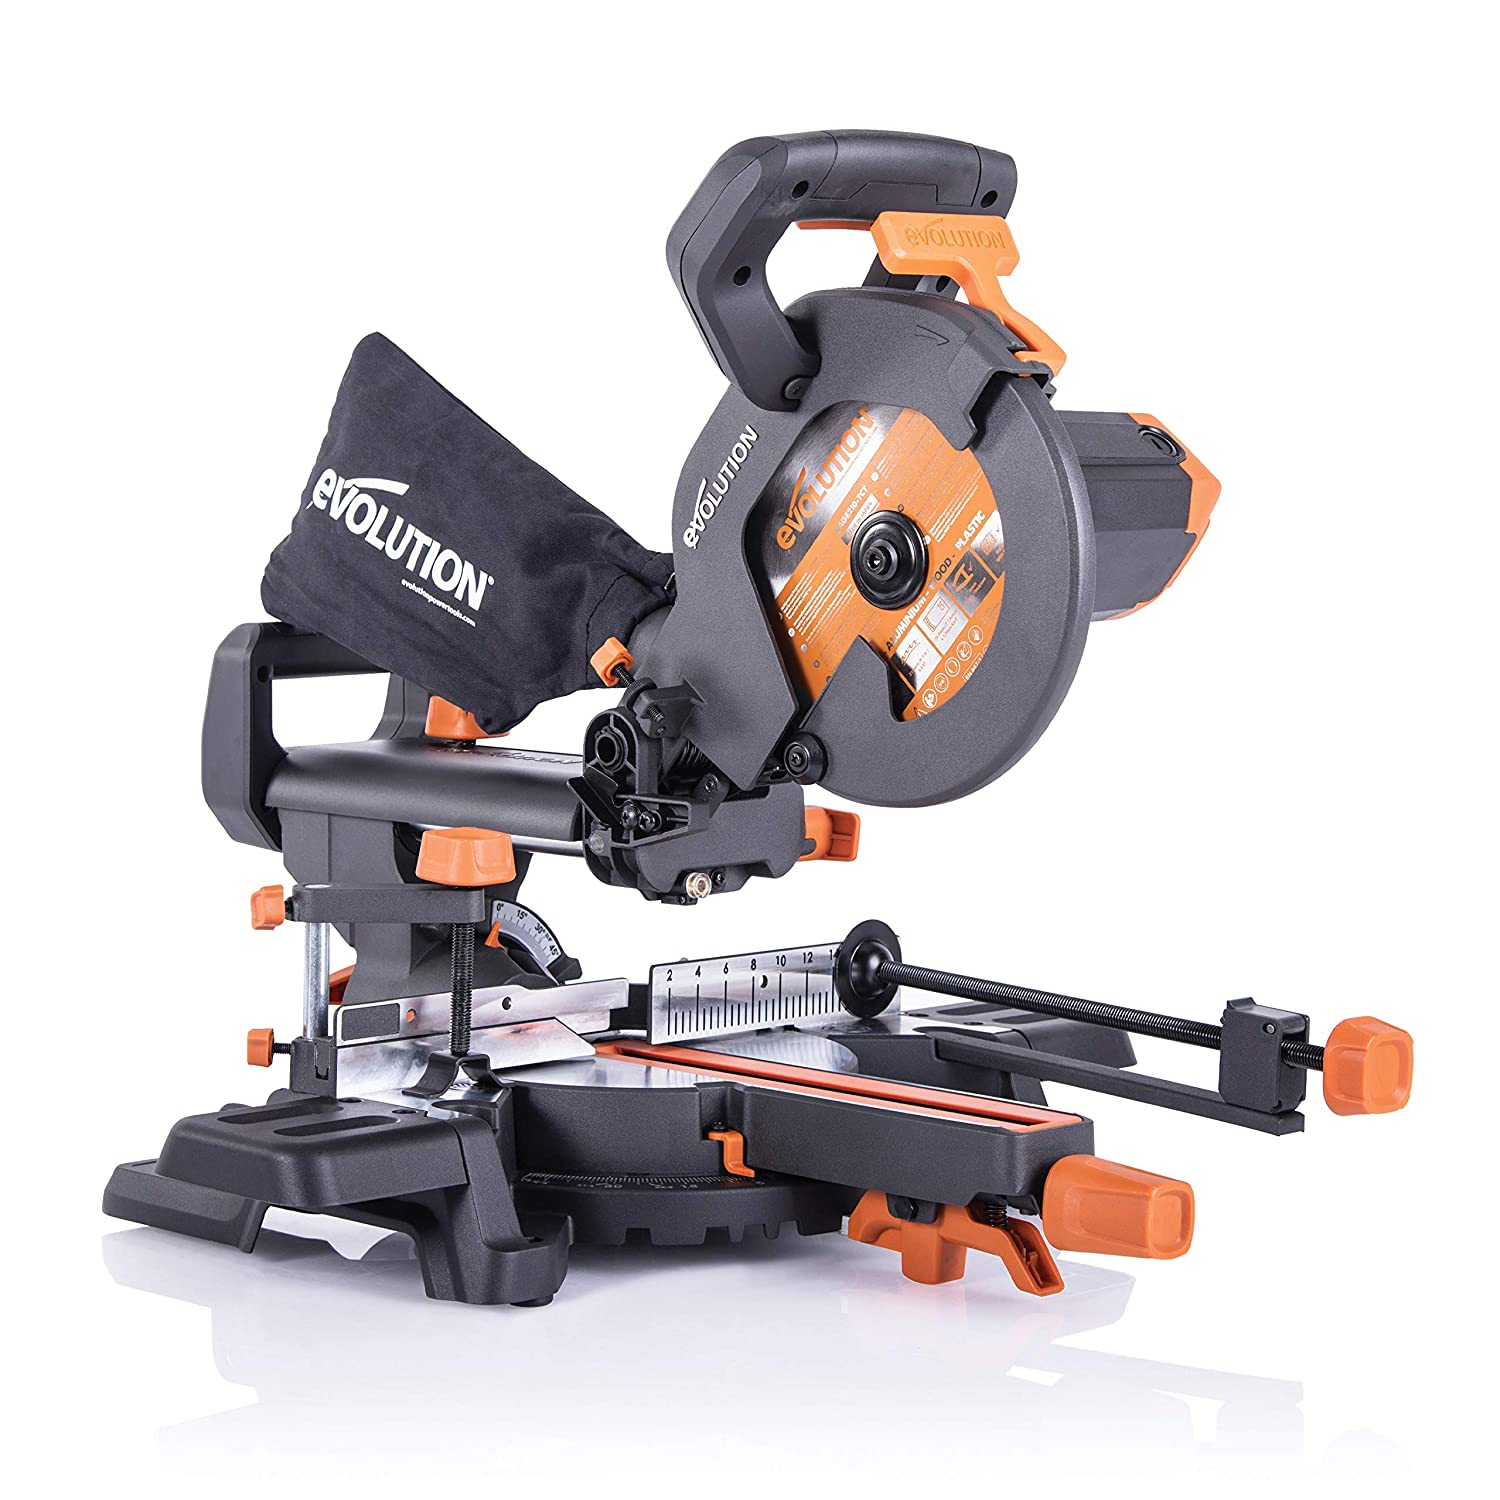 INGLETADORA TELESCOPICA- Evolution Power Tools R210SMS